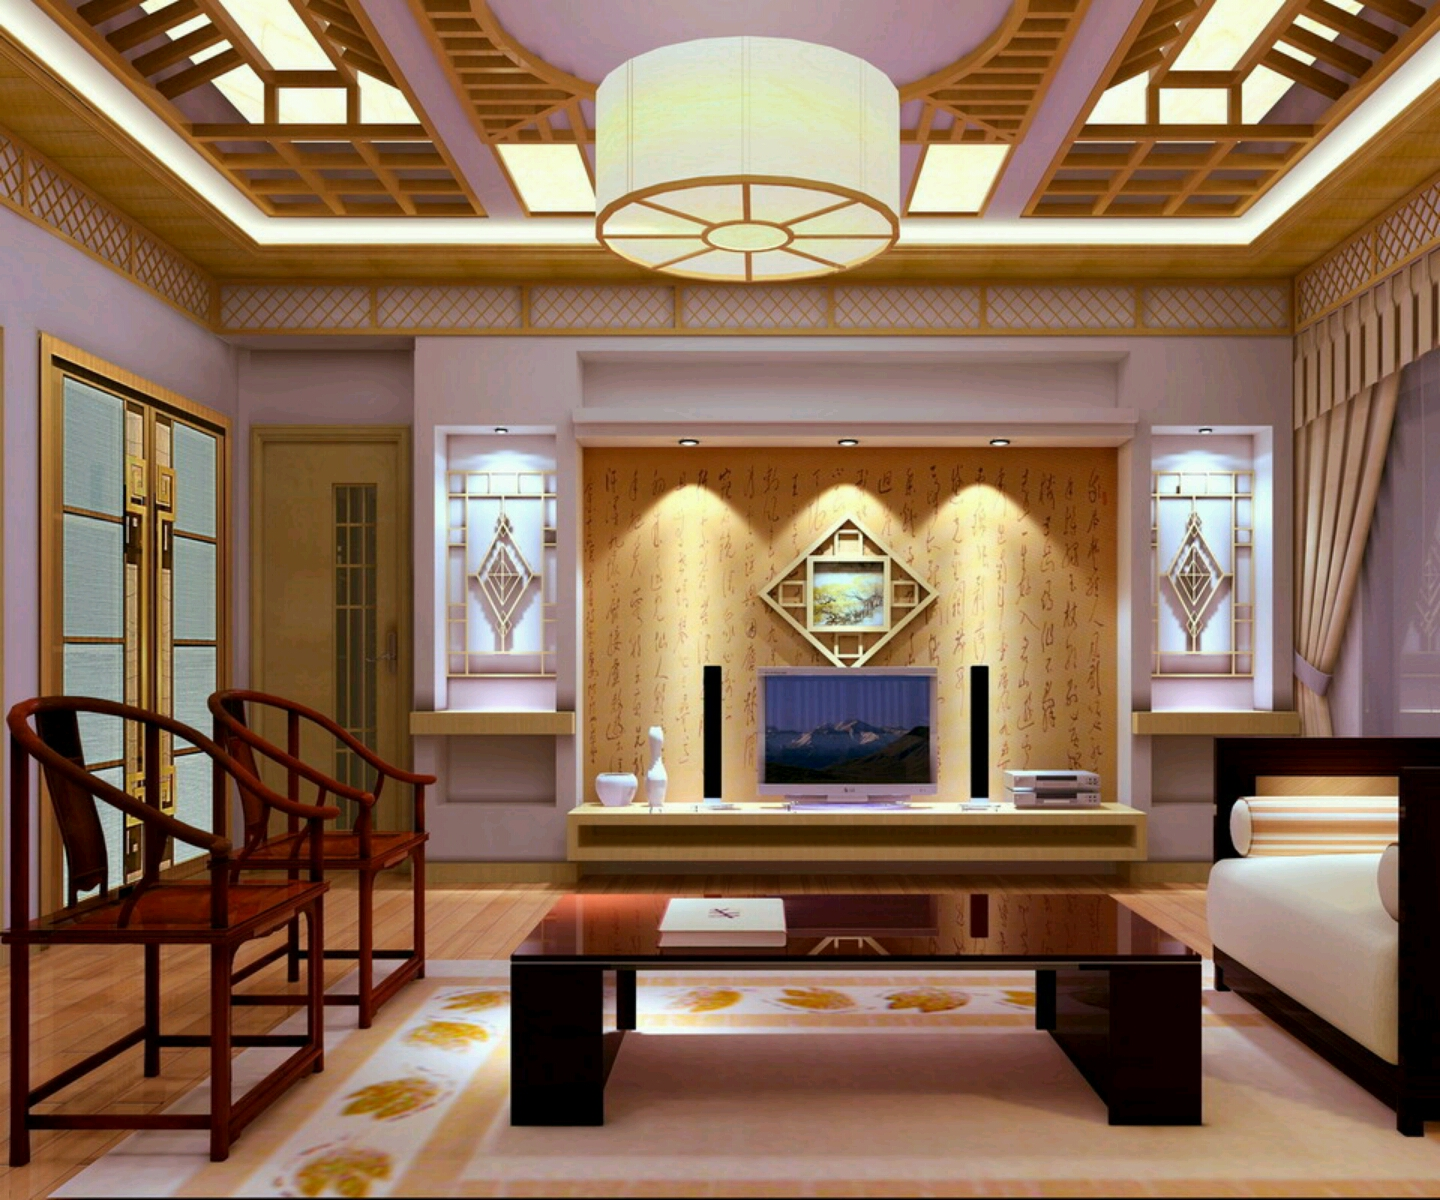 New home designs latest homes interior designs studyrooms for Latest interior design ideas